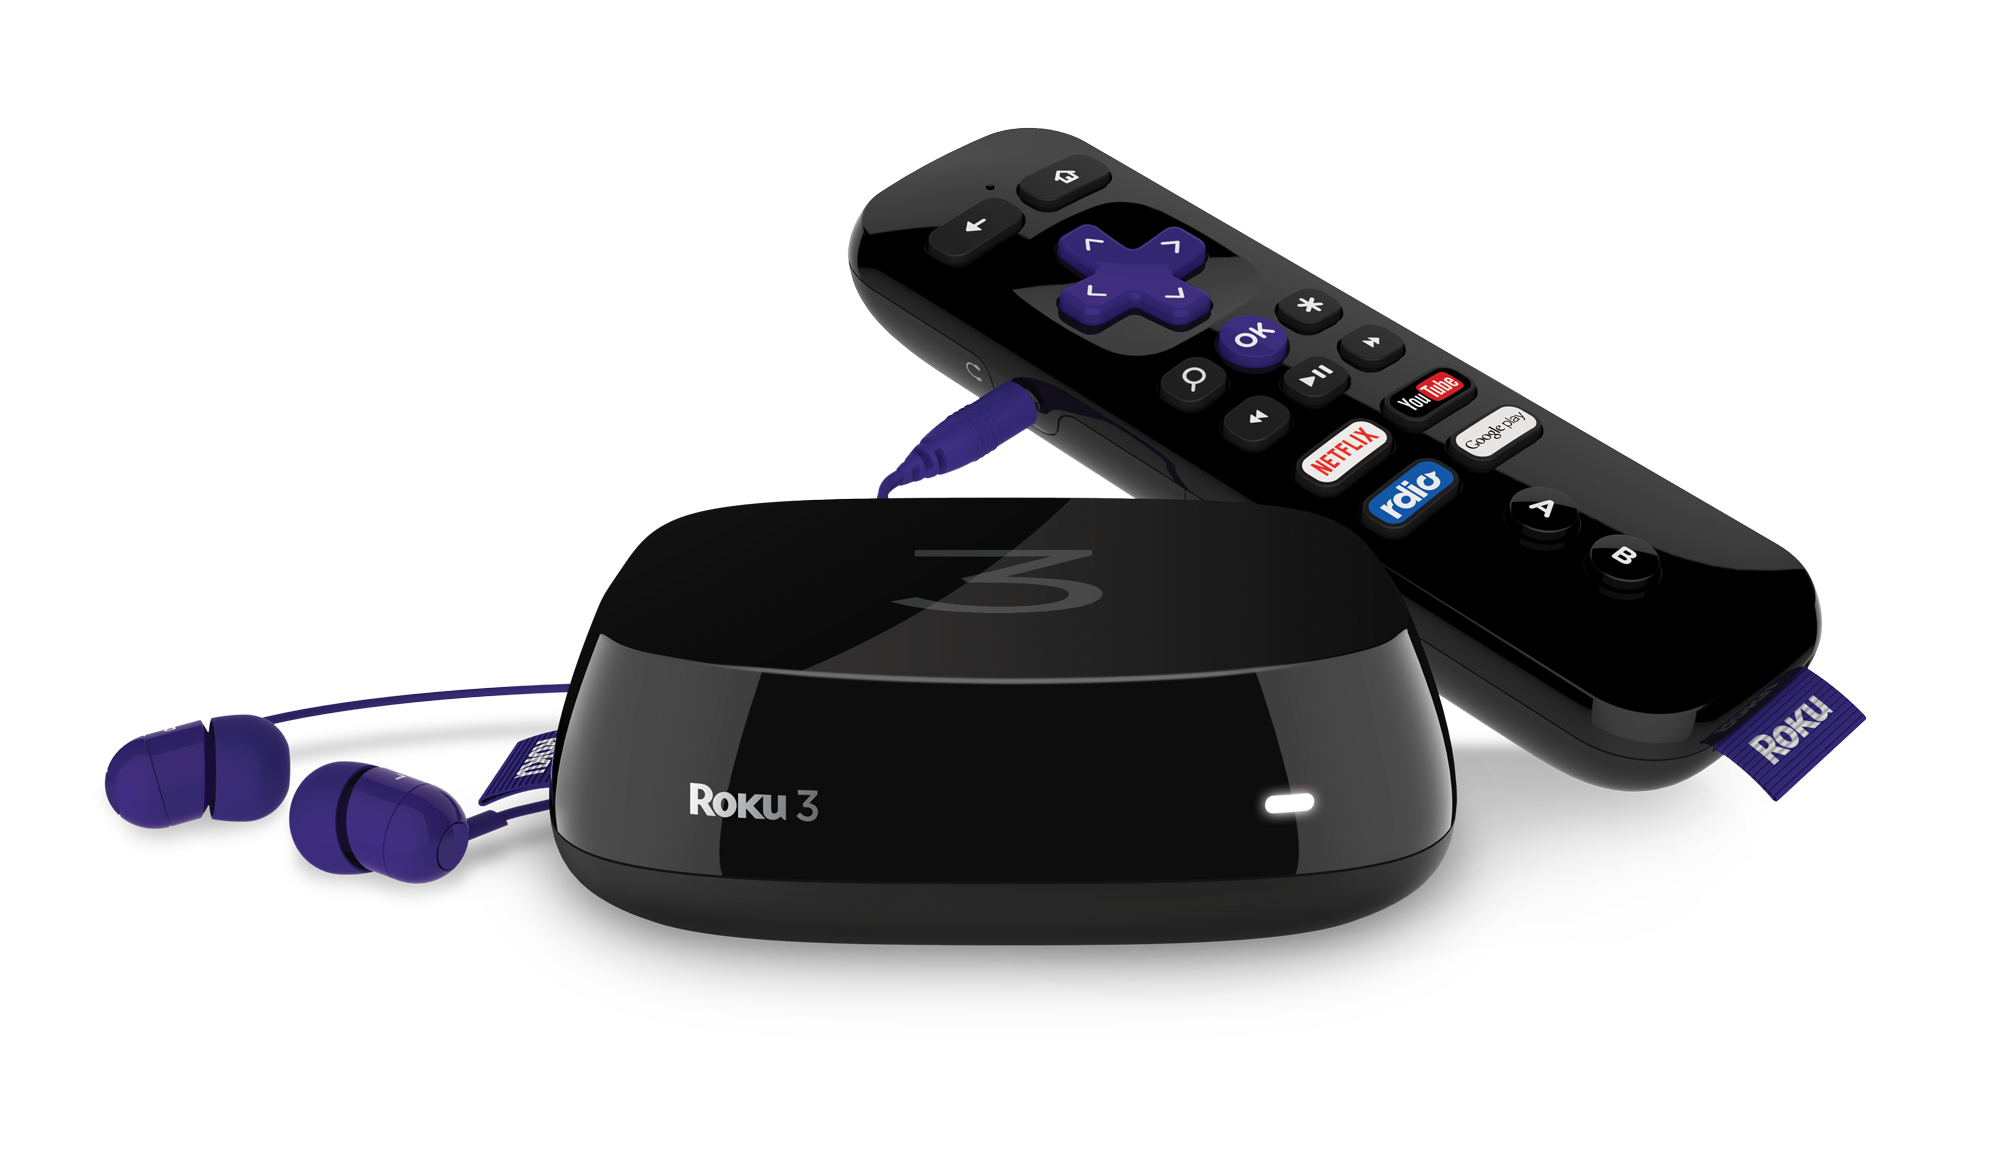 CA_ROKU3_NEW_FRONT+REMOTE_PNG